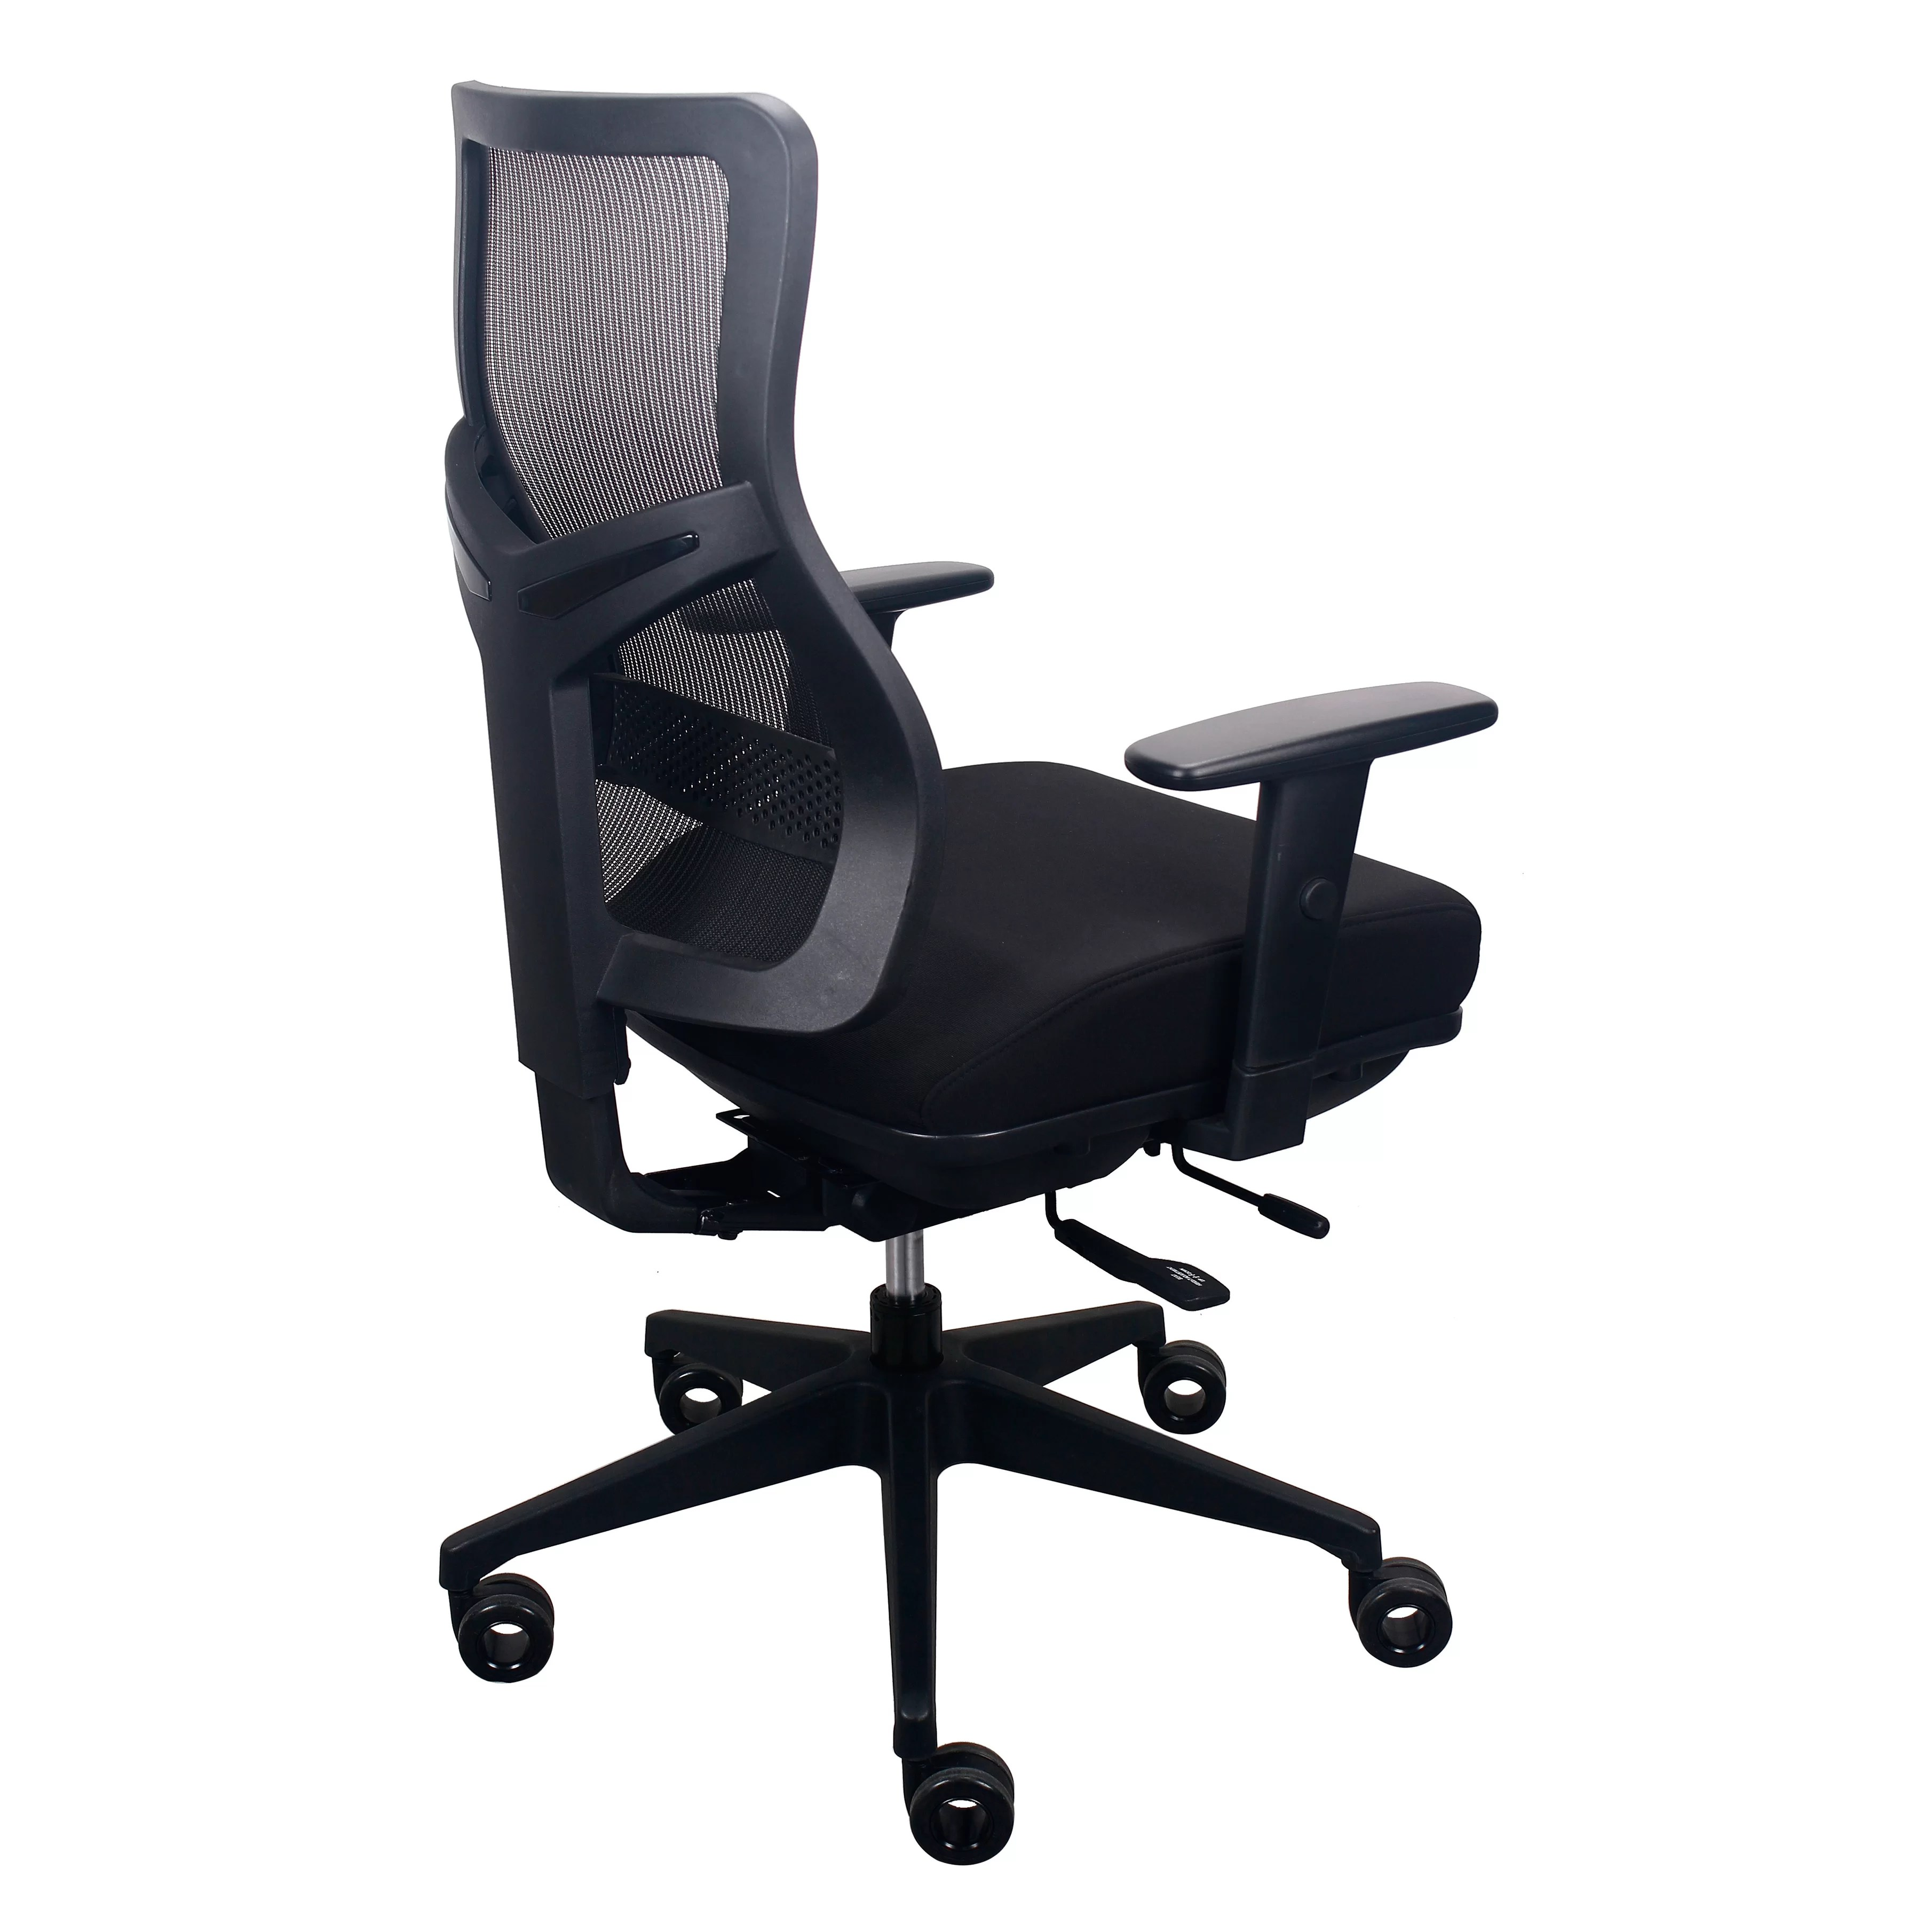 Tempur Pedic Office Chair Tempur Pedic High Back Mesh Executive Office Chair With